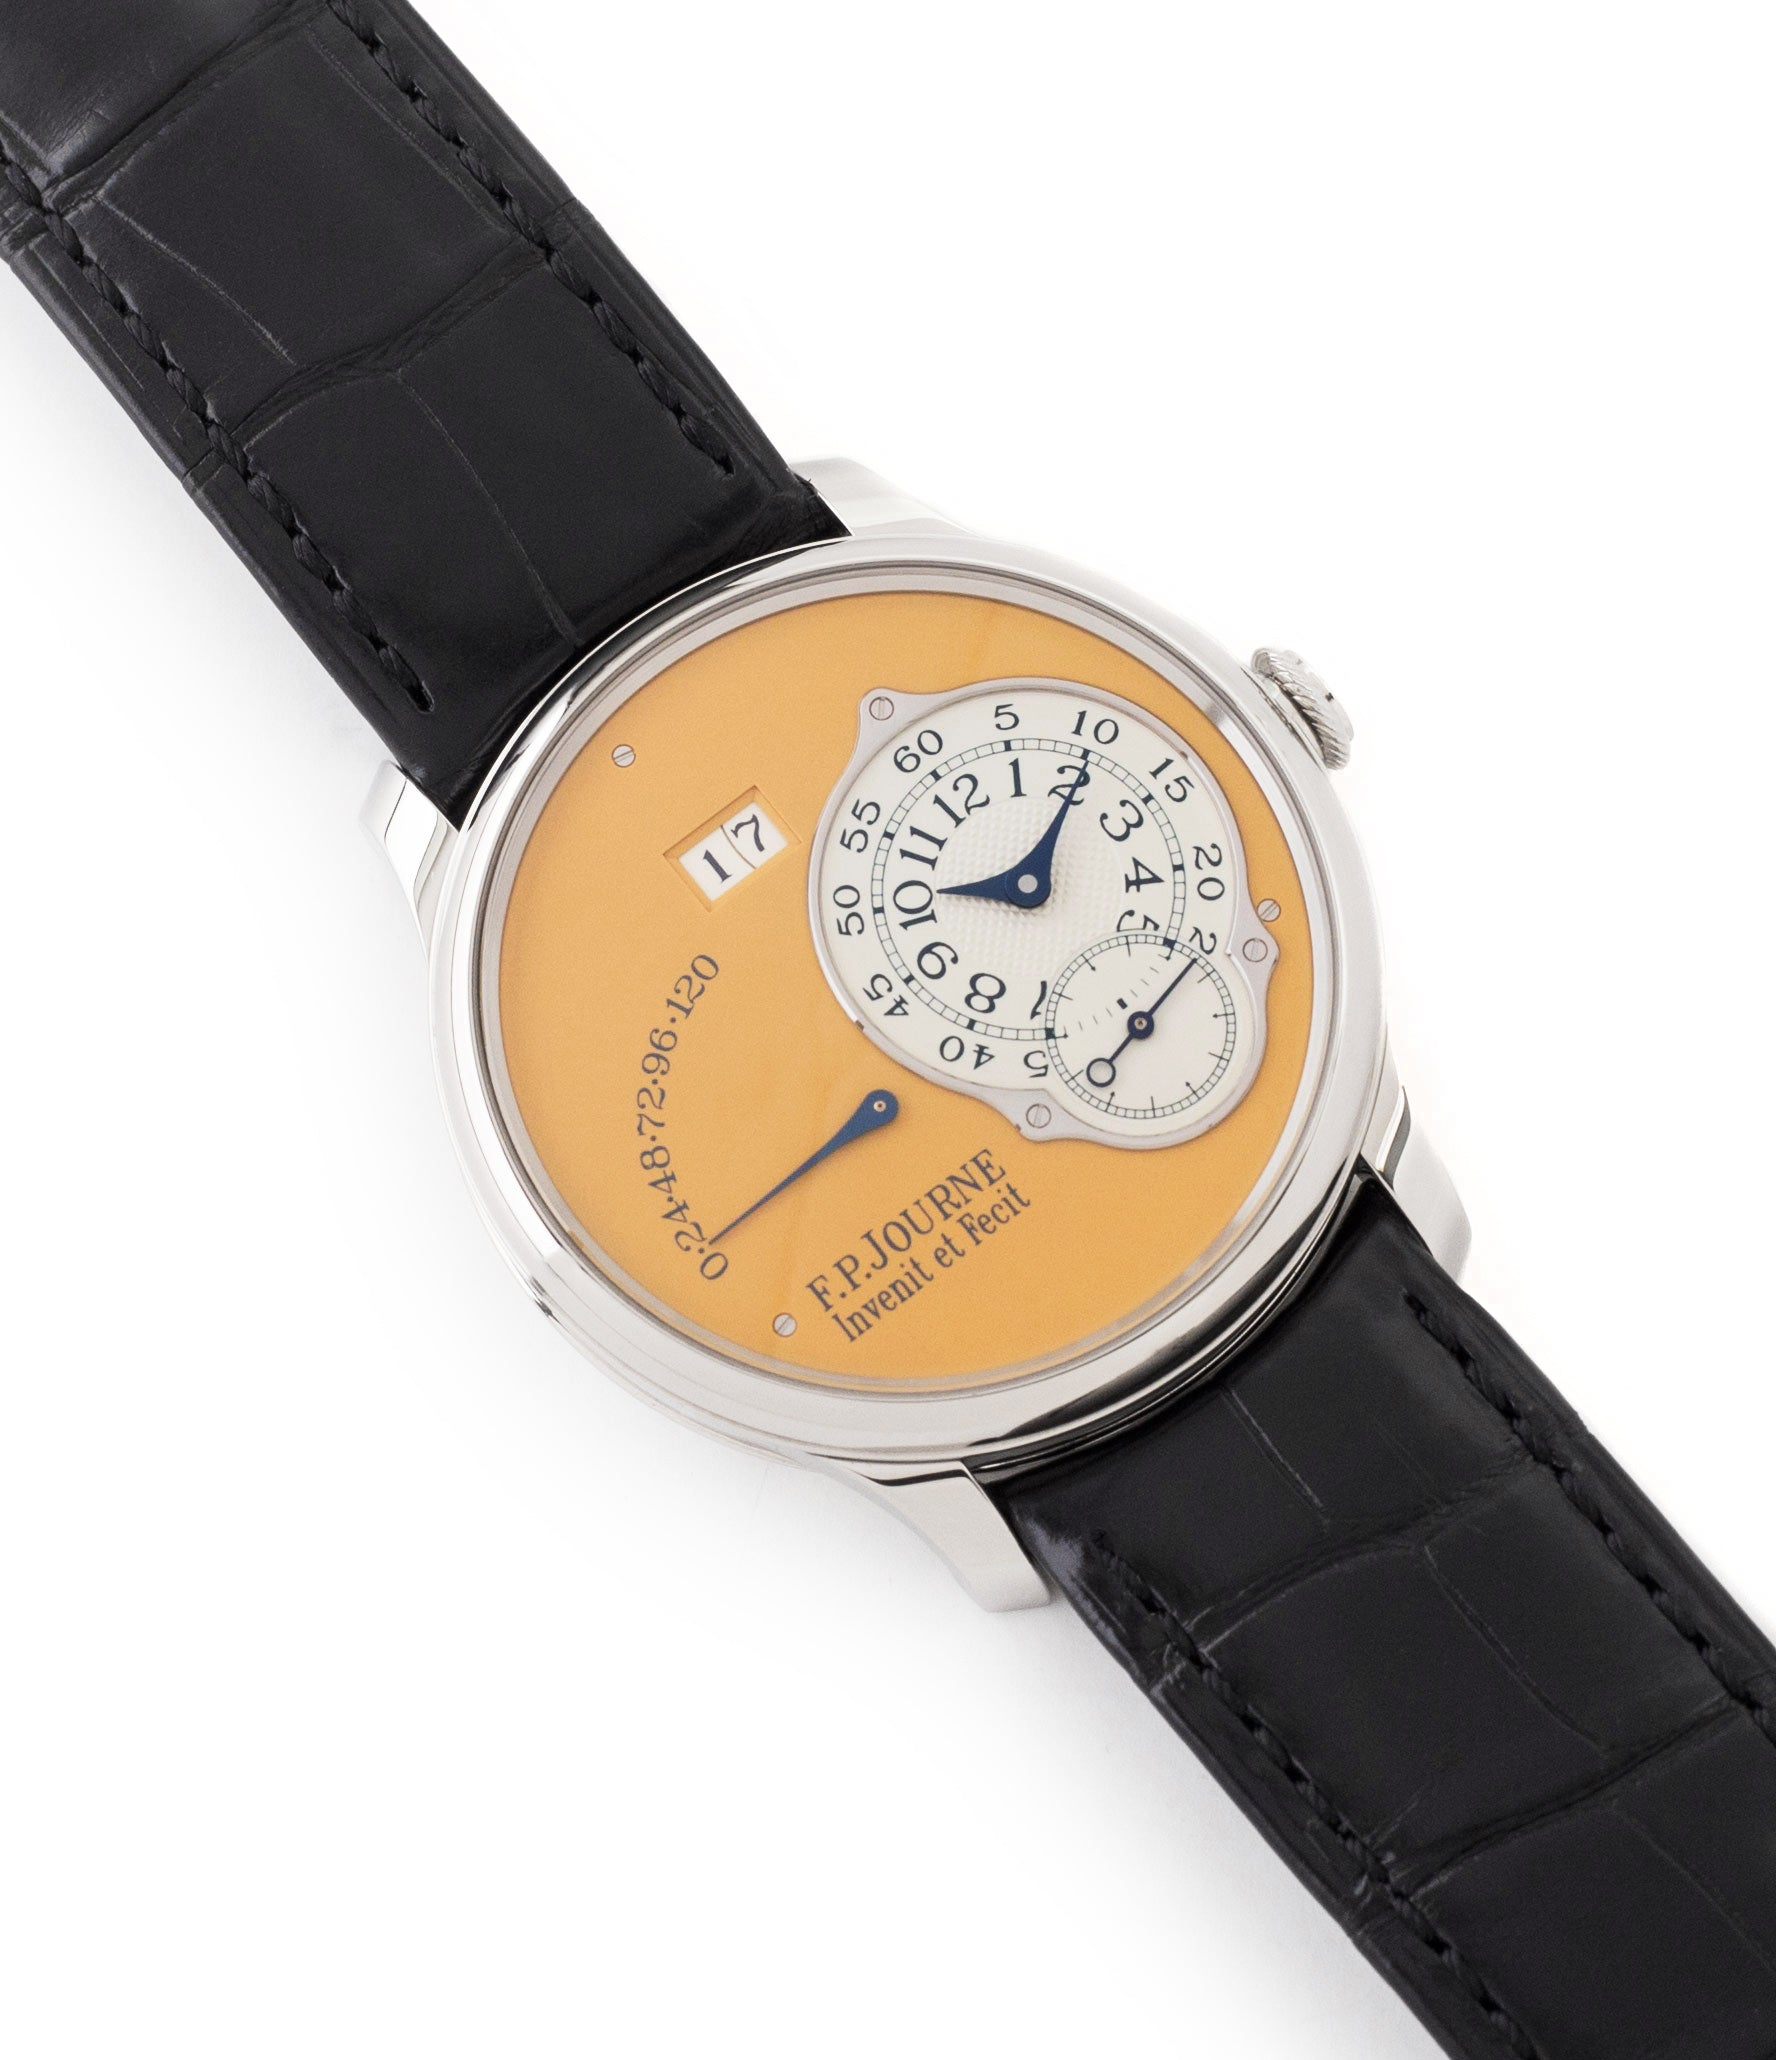 for sale F. P. Journe Octa Automatique 38 mm steel limited edition dress watch for sale online at A Collected Man London UK approved seller of independent watchmakers